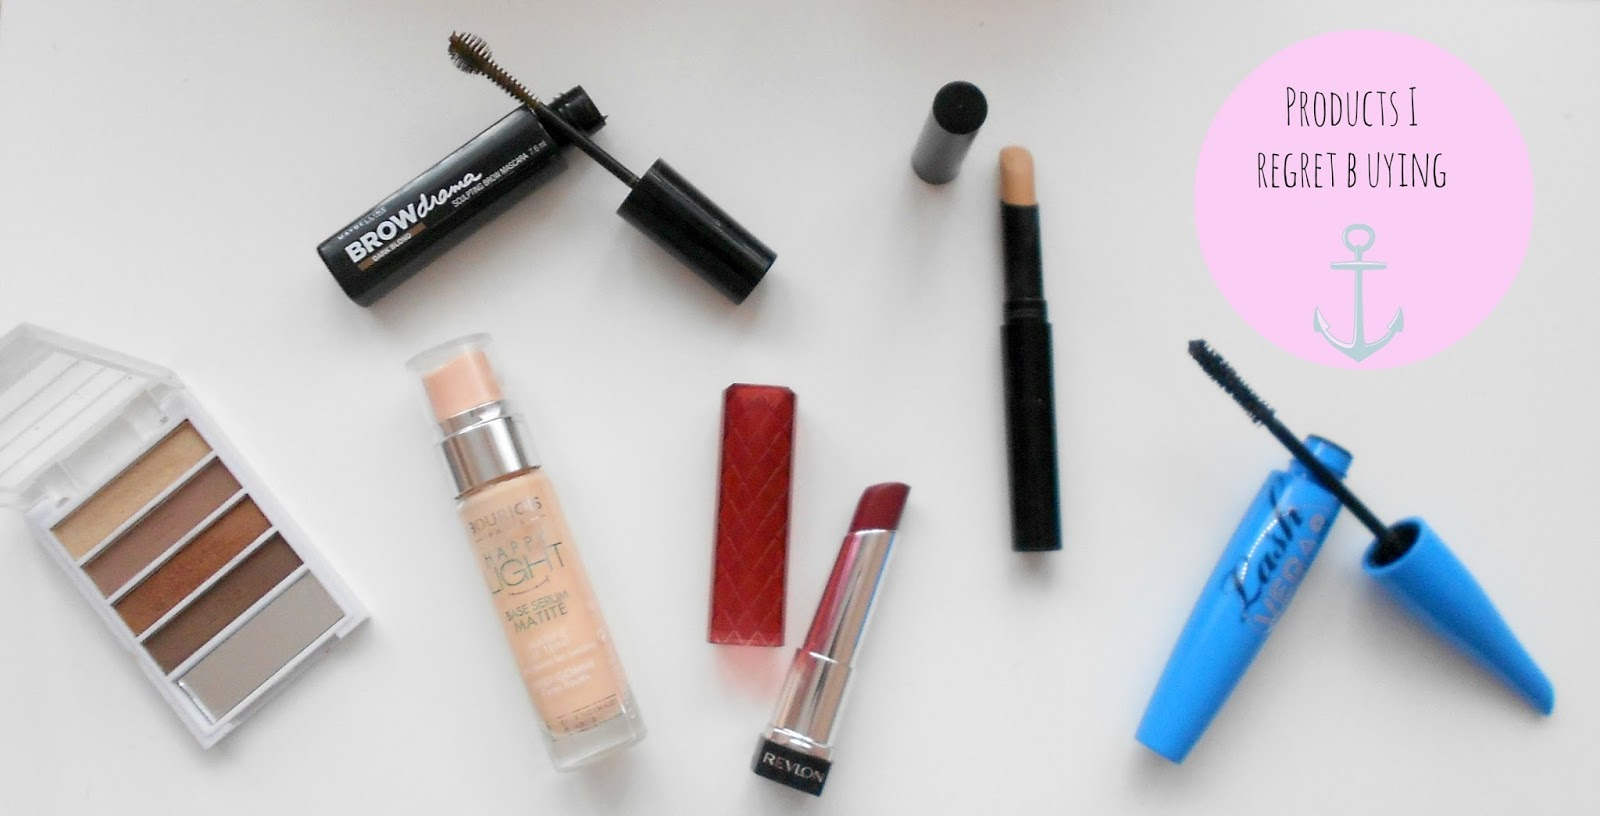 beauty blog uk products i regret buying not worth the hype